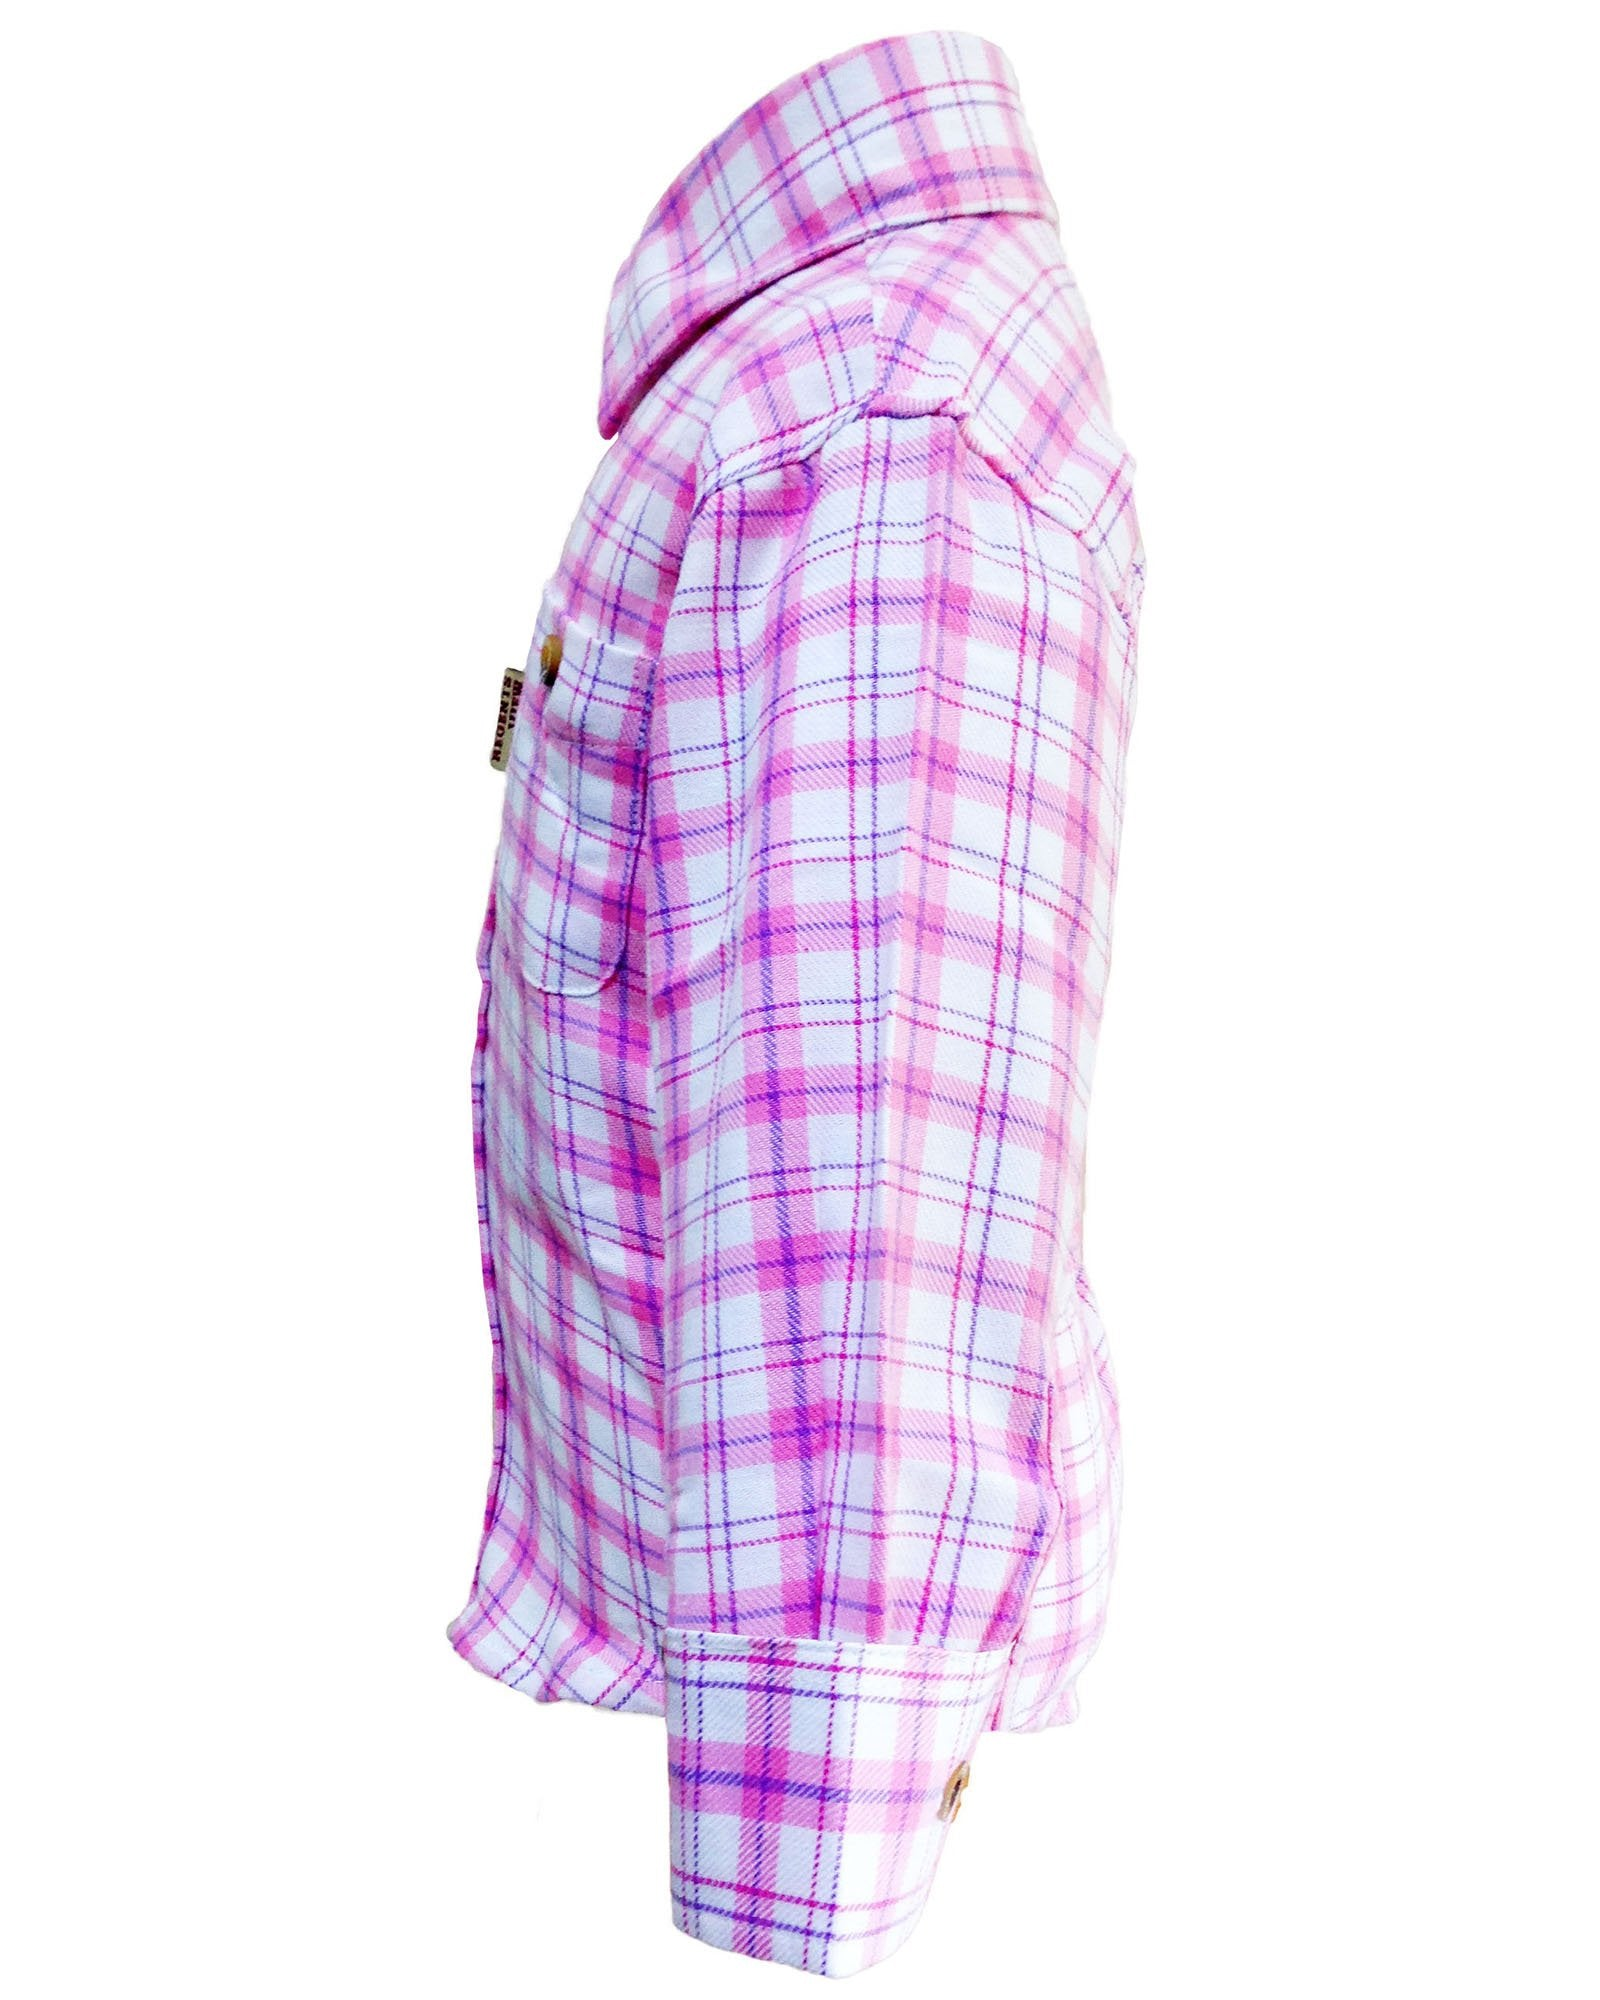 Regents View Childrens Tattersall Check Shirt - Pink SHP1